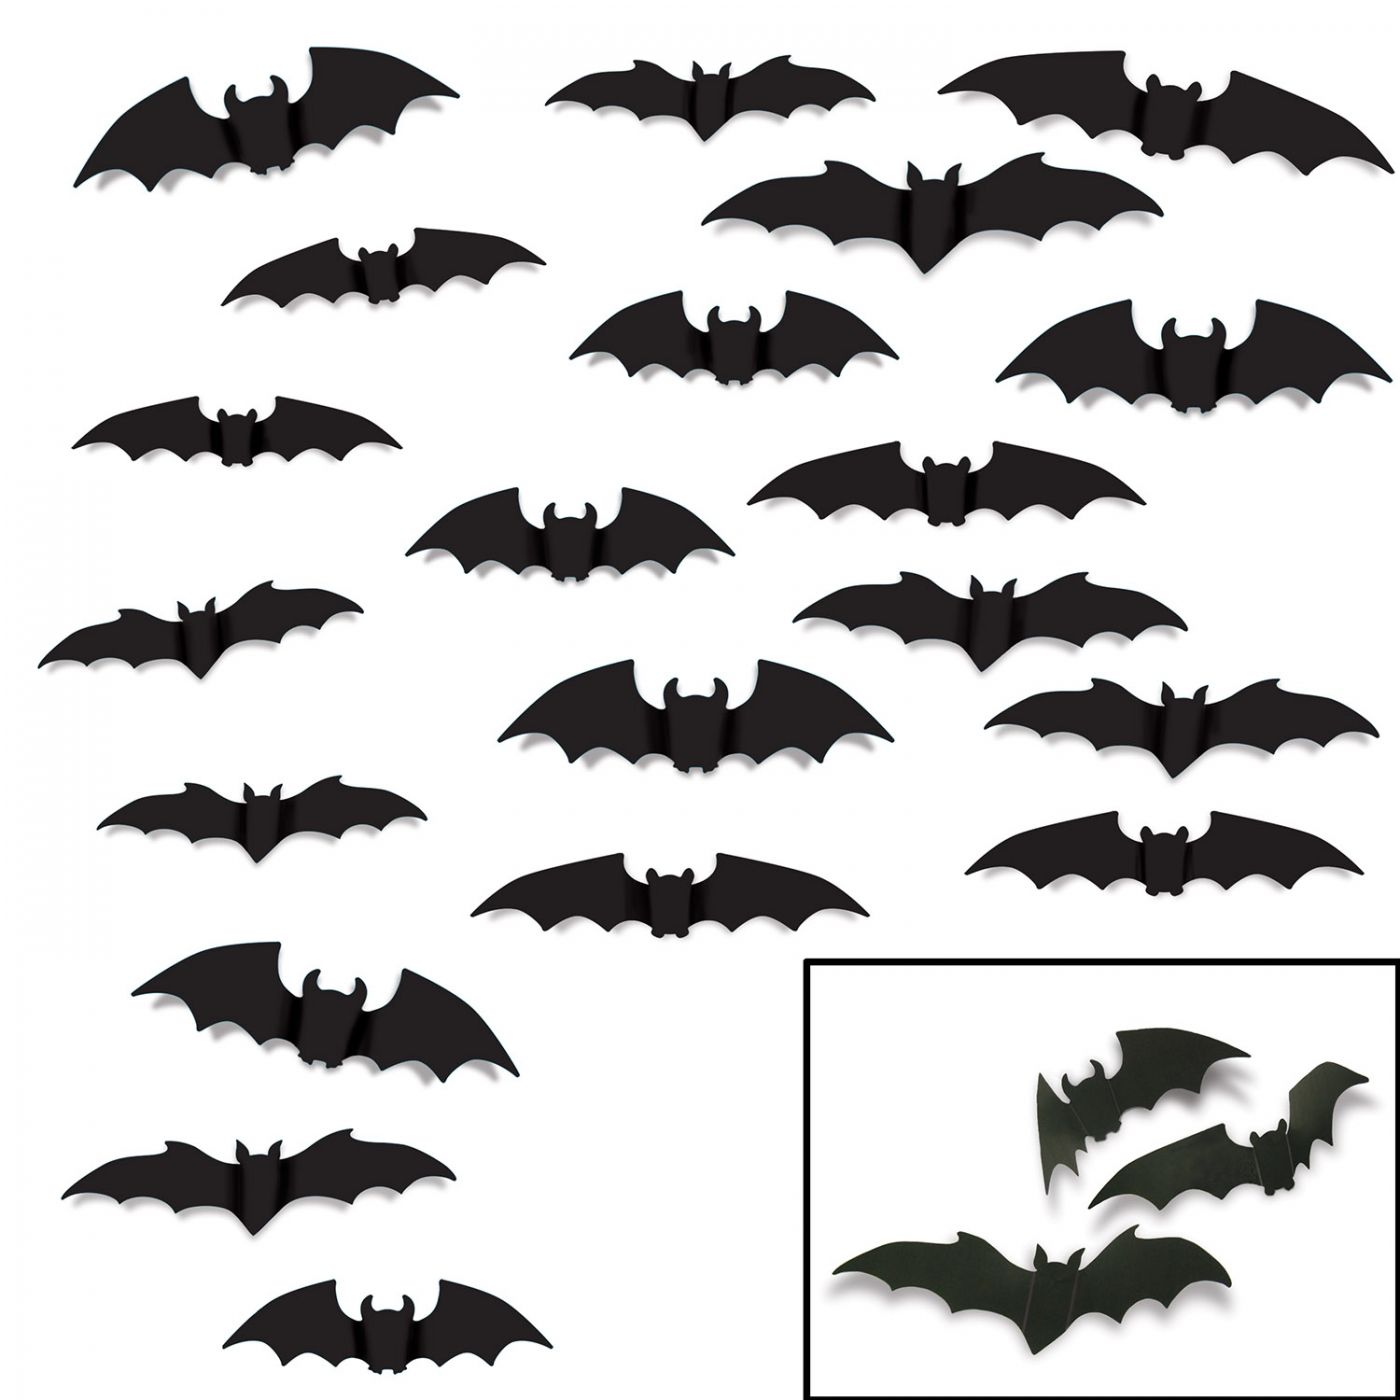 Image of Bat Silhouettes